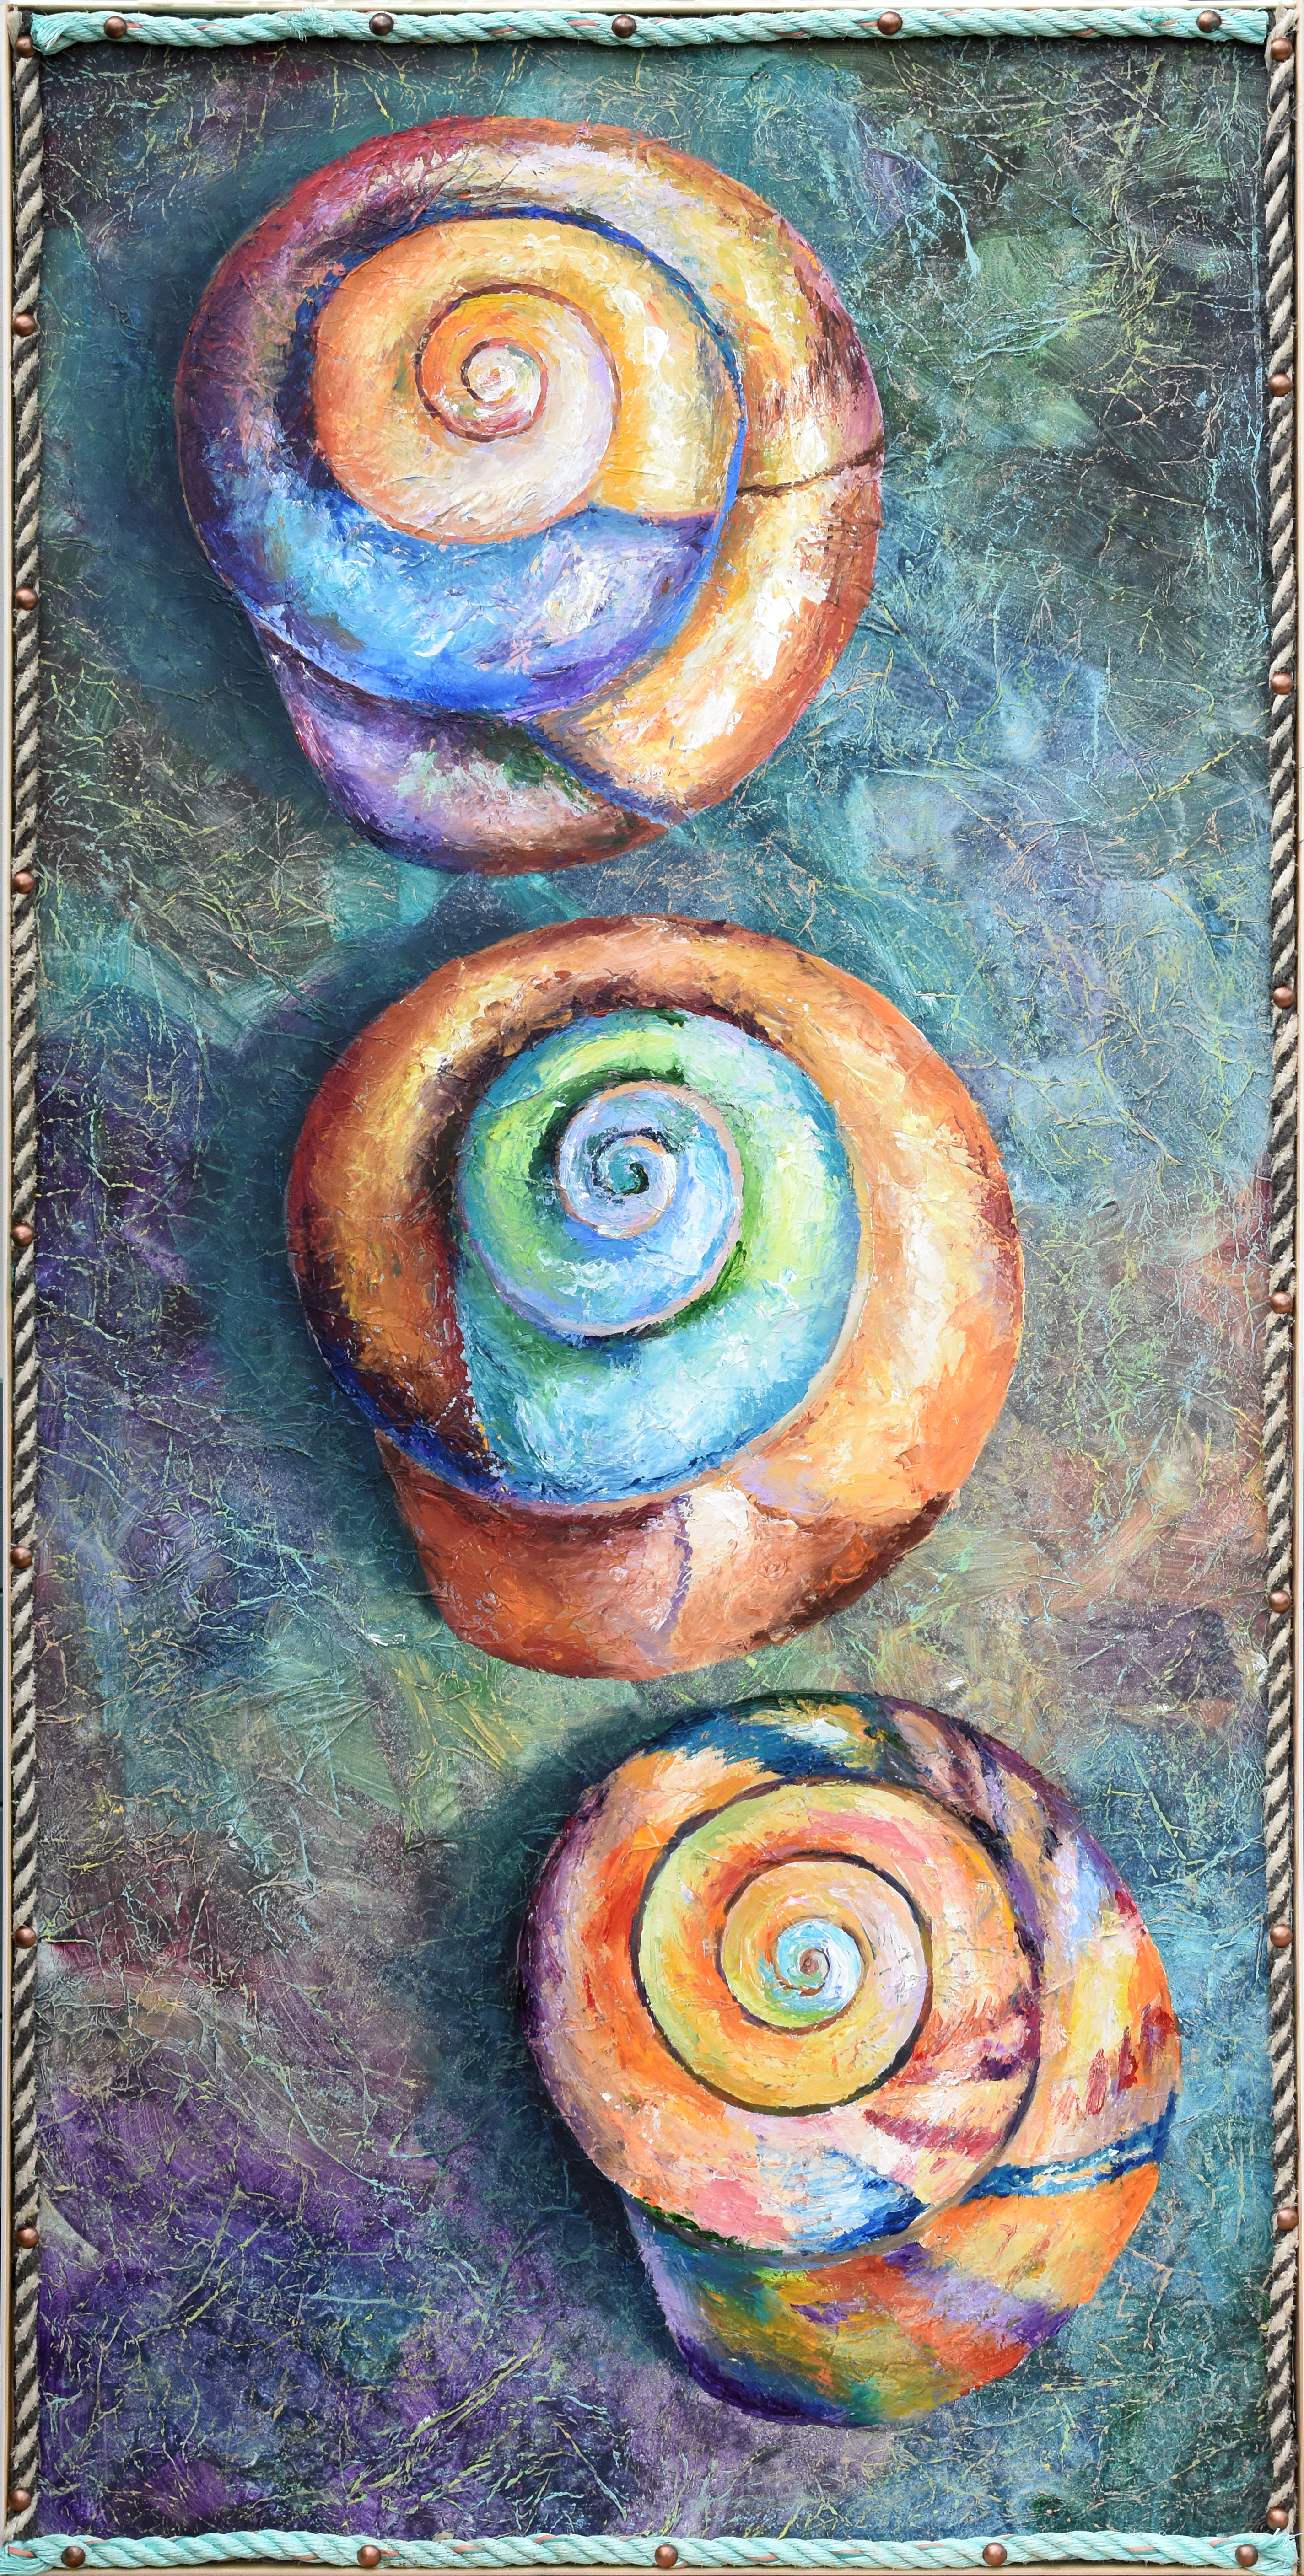 Three spiral shells